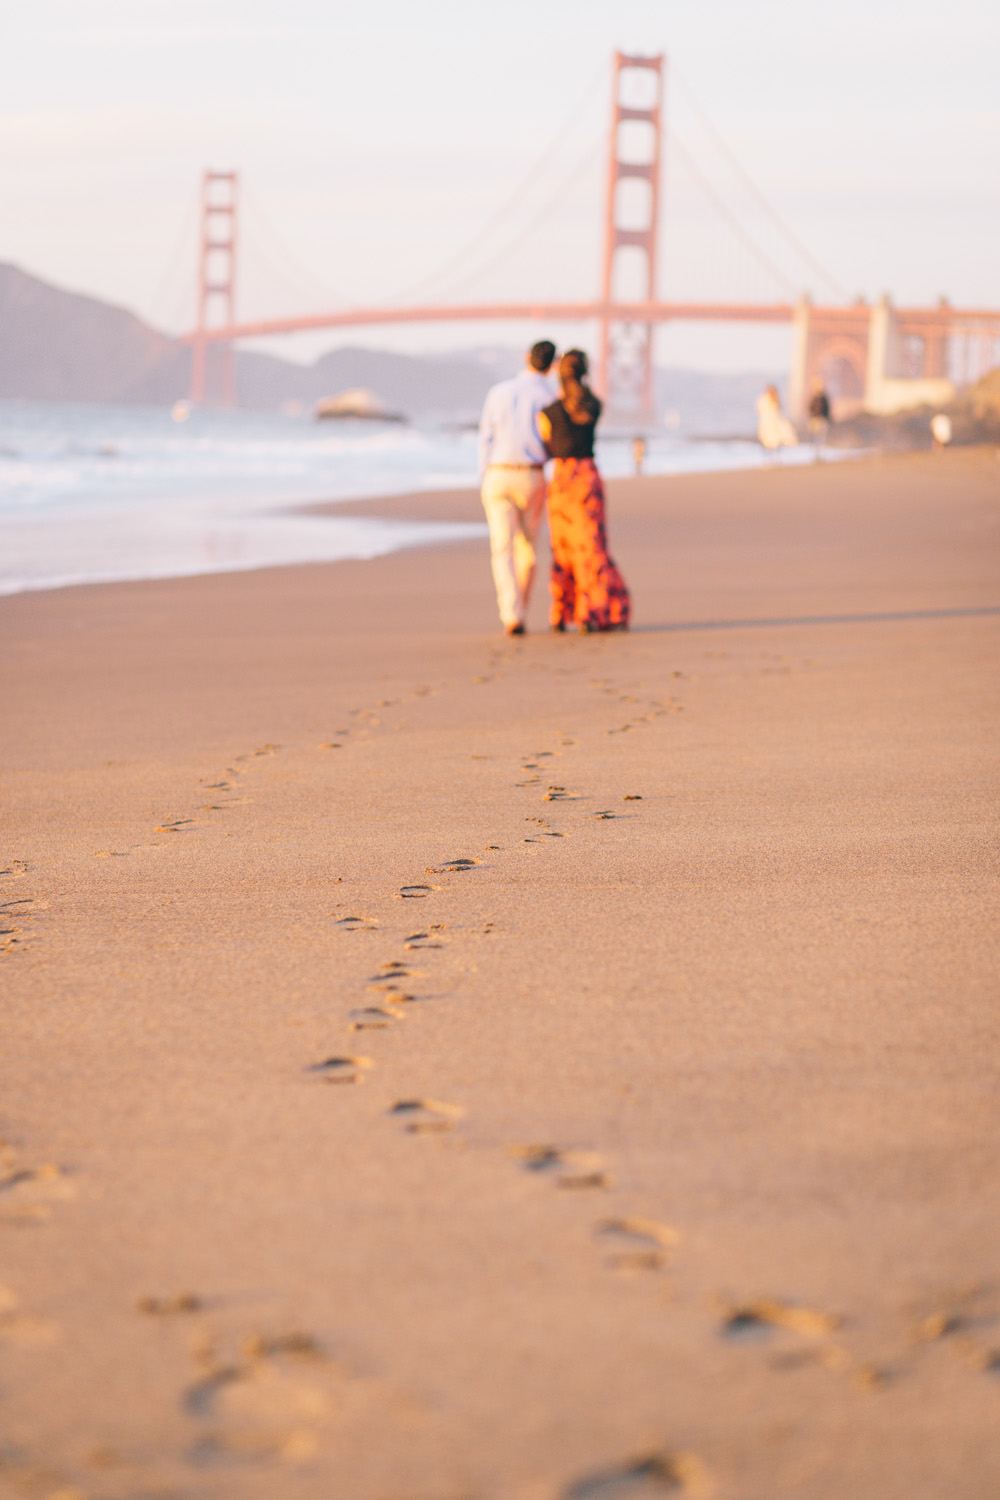 Engagement-Wedding-Photographer-San-Francisco-Engagement-session-Baker-Beach-Palace-of-Fine-Arts-and-Legion-of-Honor-byJBJ-Pictures-14.jpg